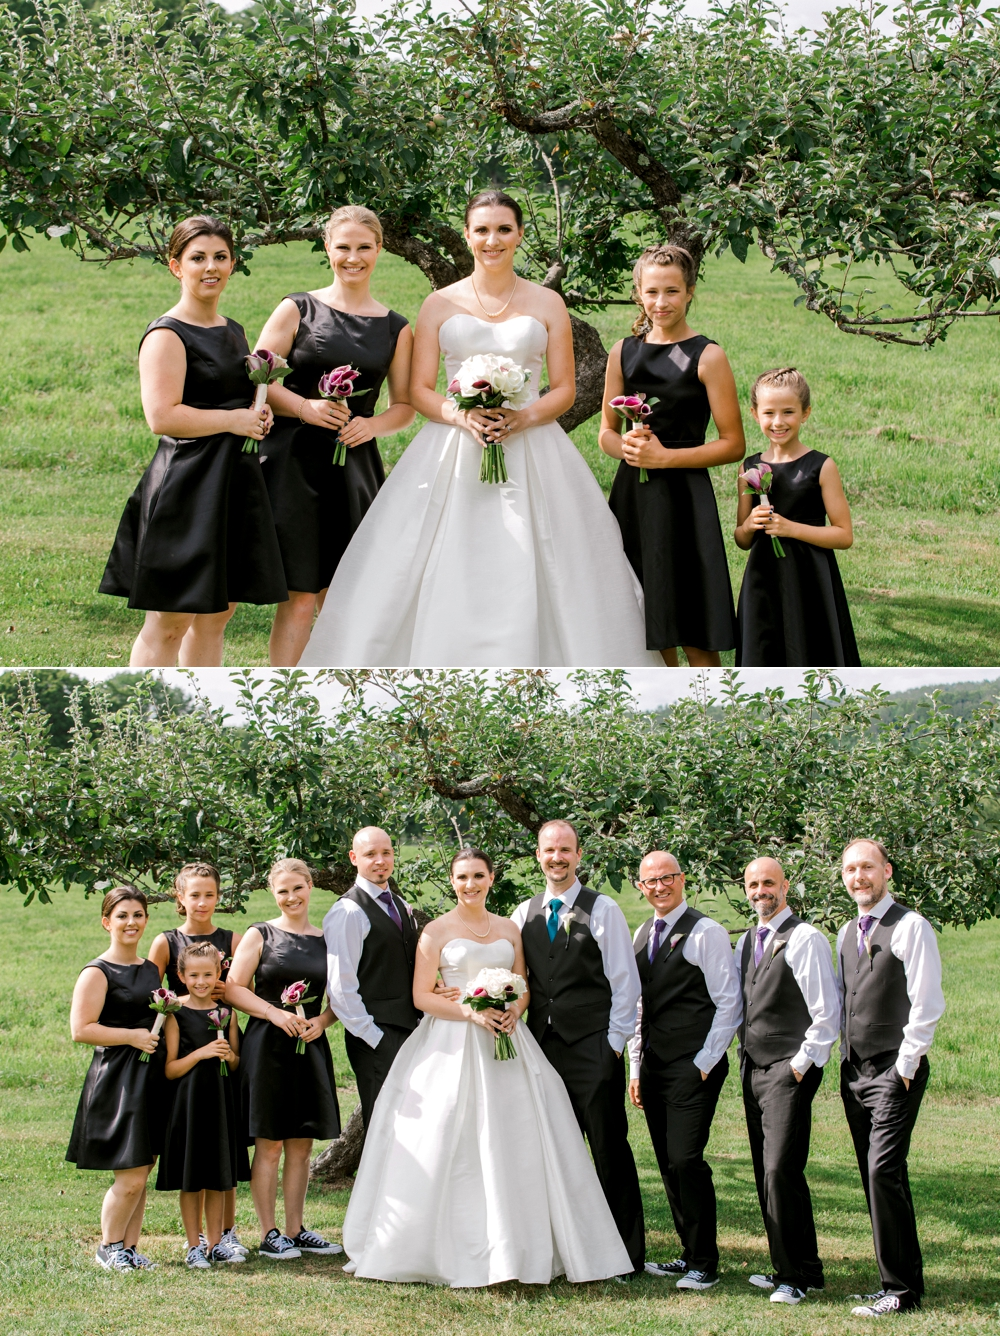 SomerbyJonesPhotography__VermontWedding_VTWedding_BackyardVermontWedding_0017.jpg